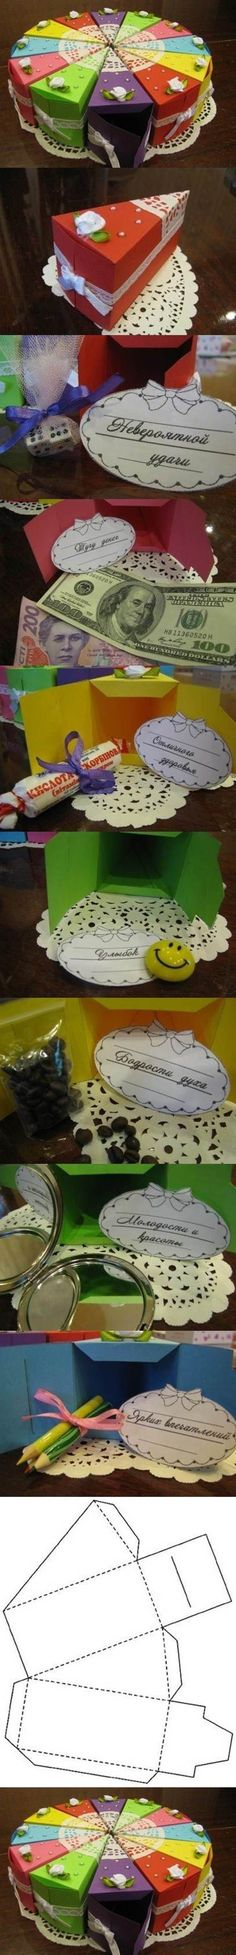 DIY Cake Shaped Gift Boxes 2